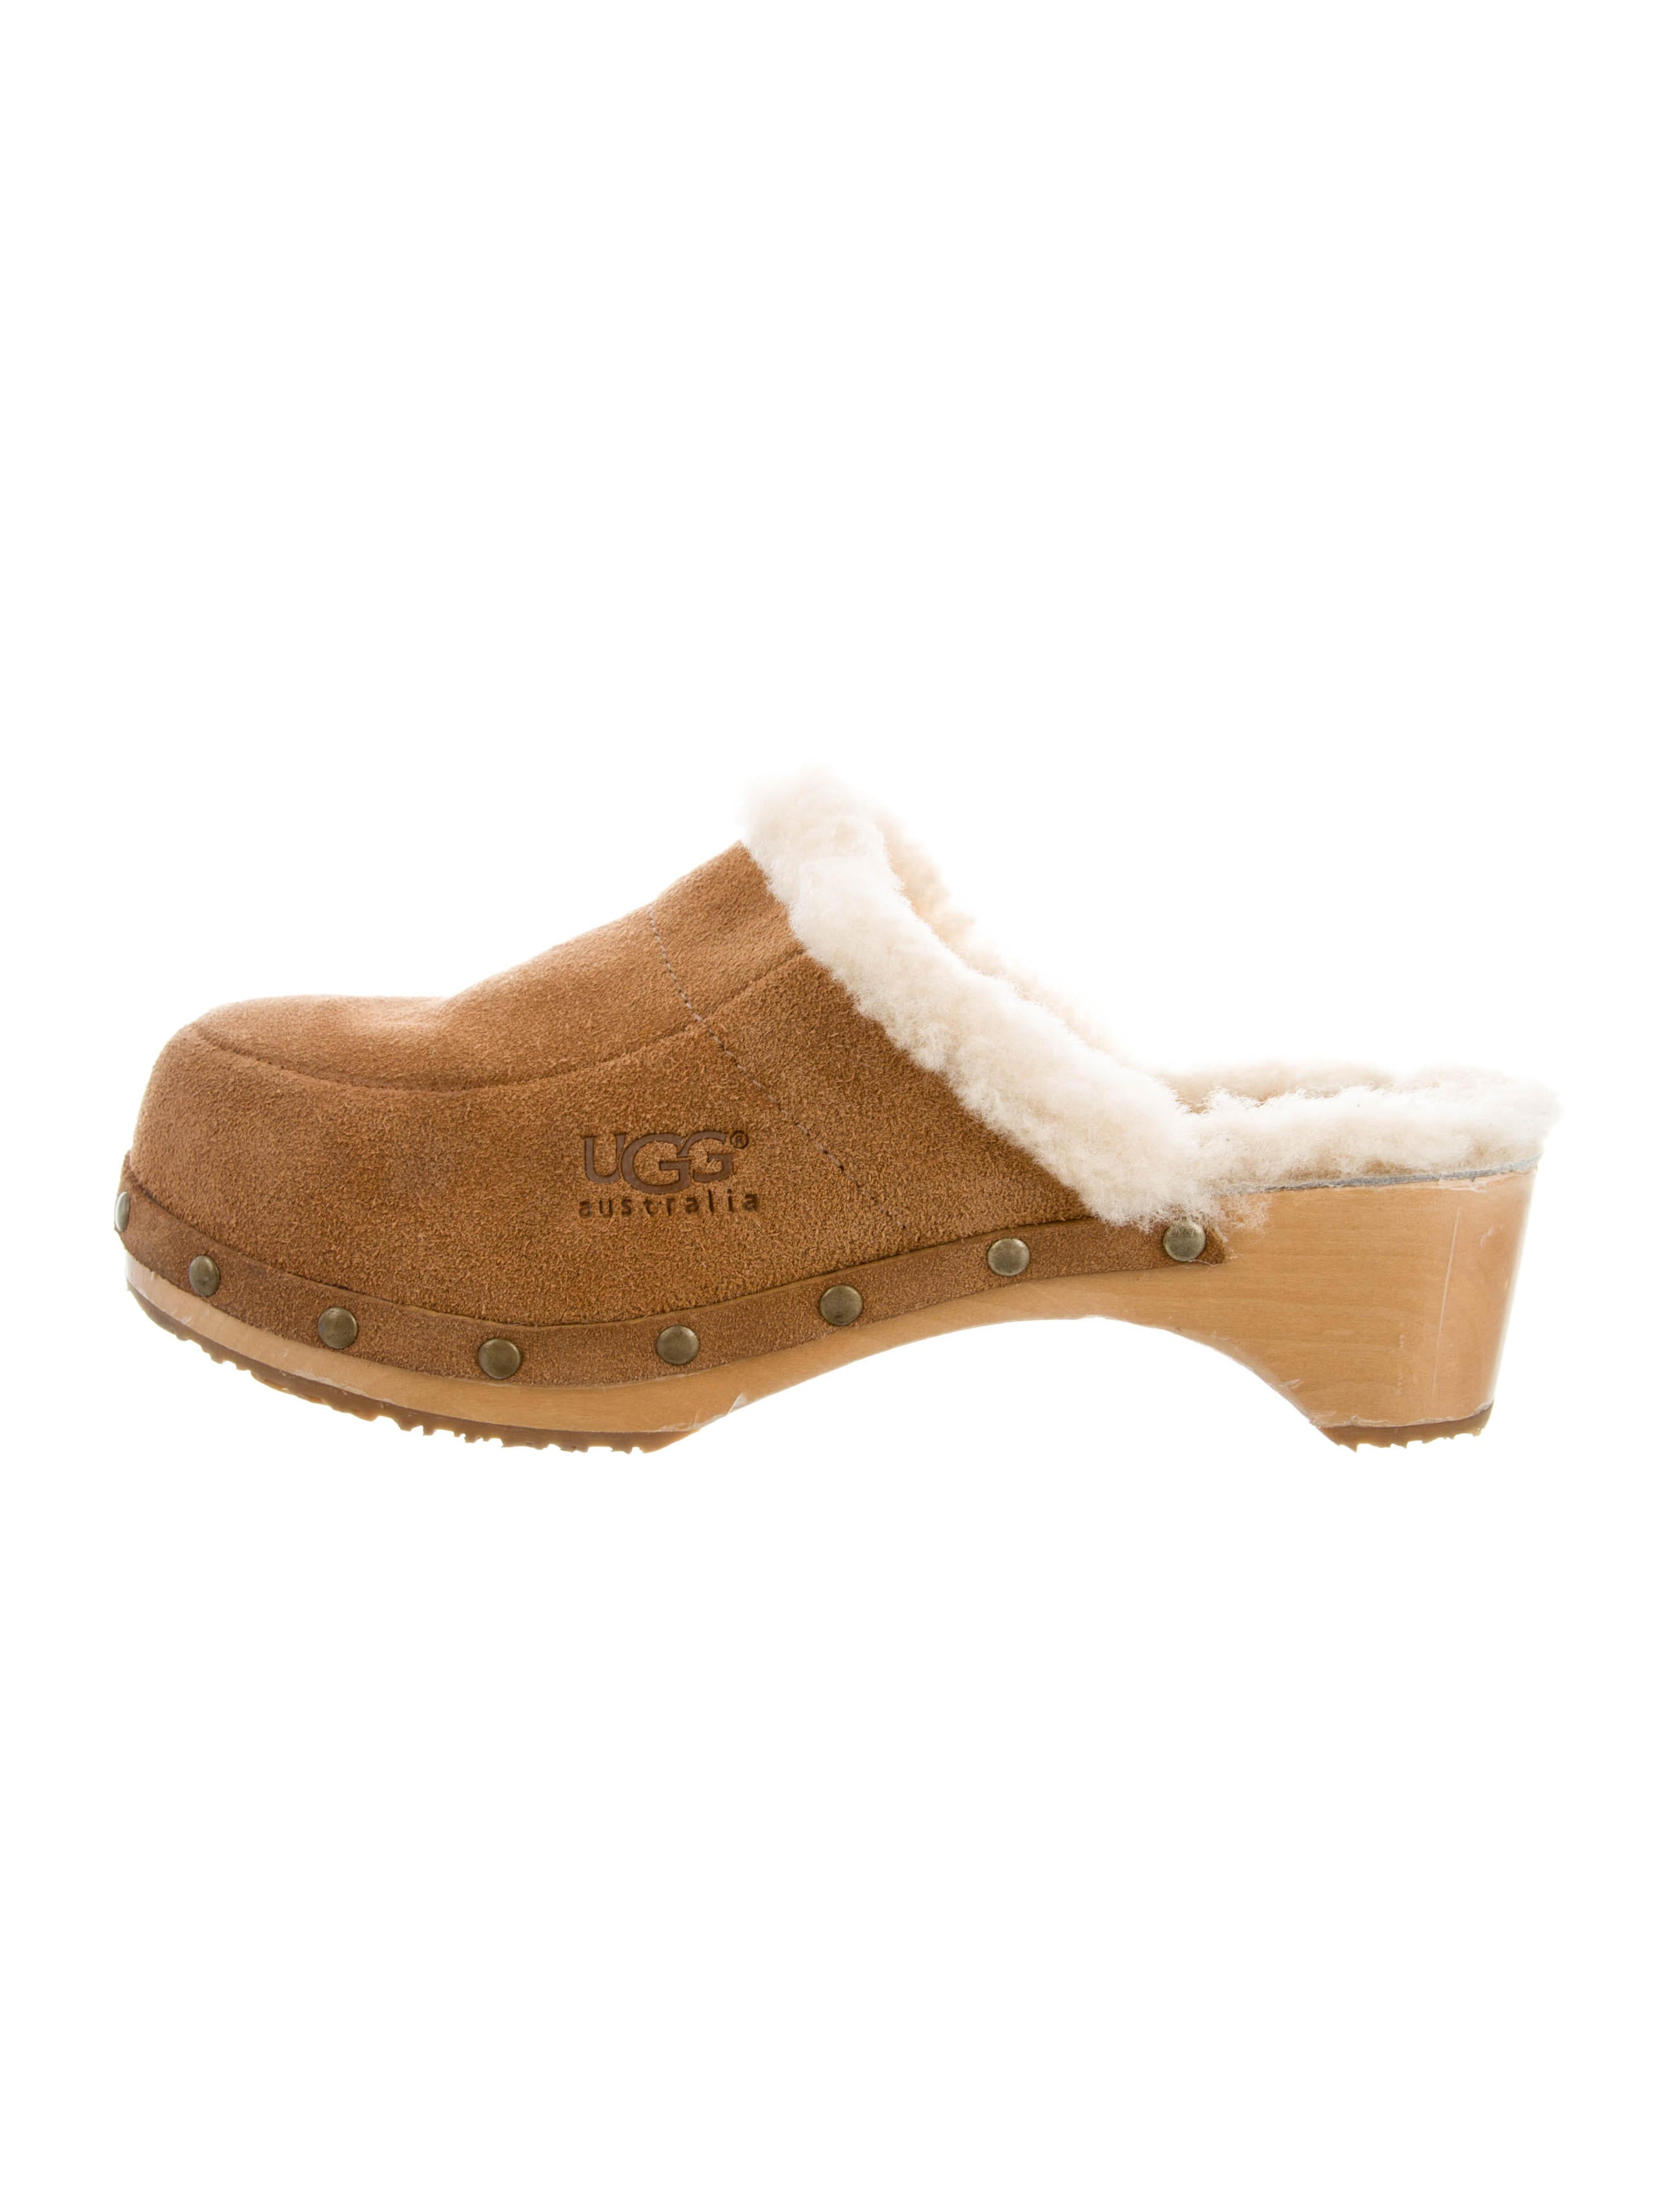 outlet for nice finishline online UGG Australia Suede Kalie Clogs UABmp